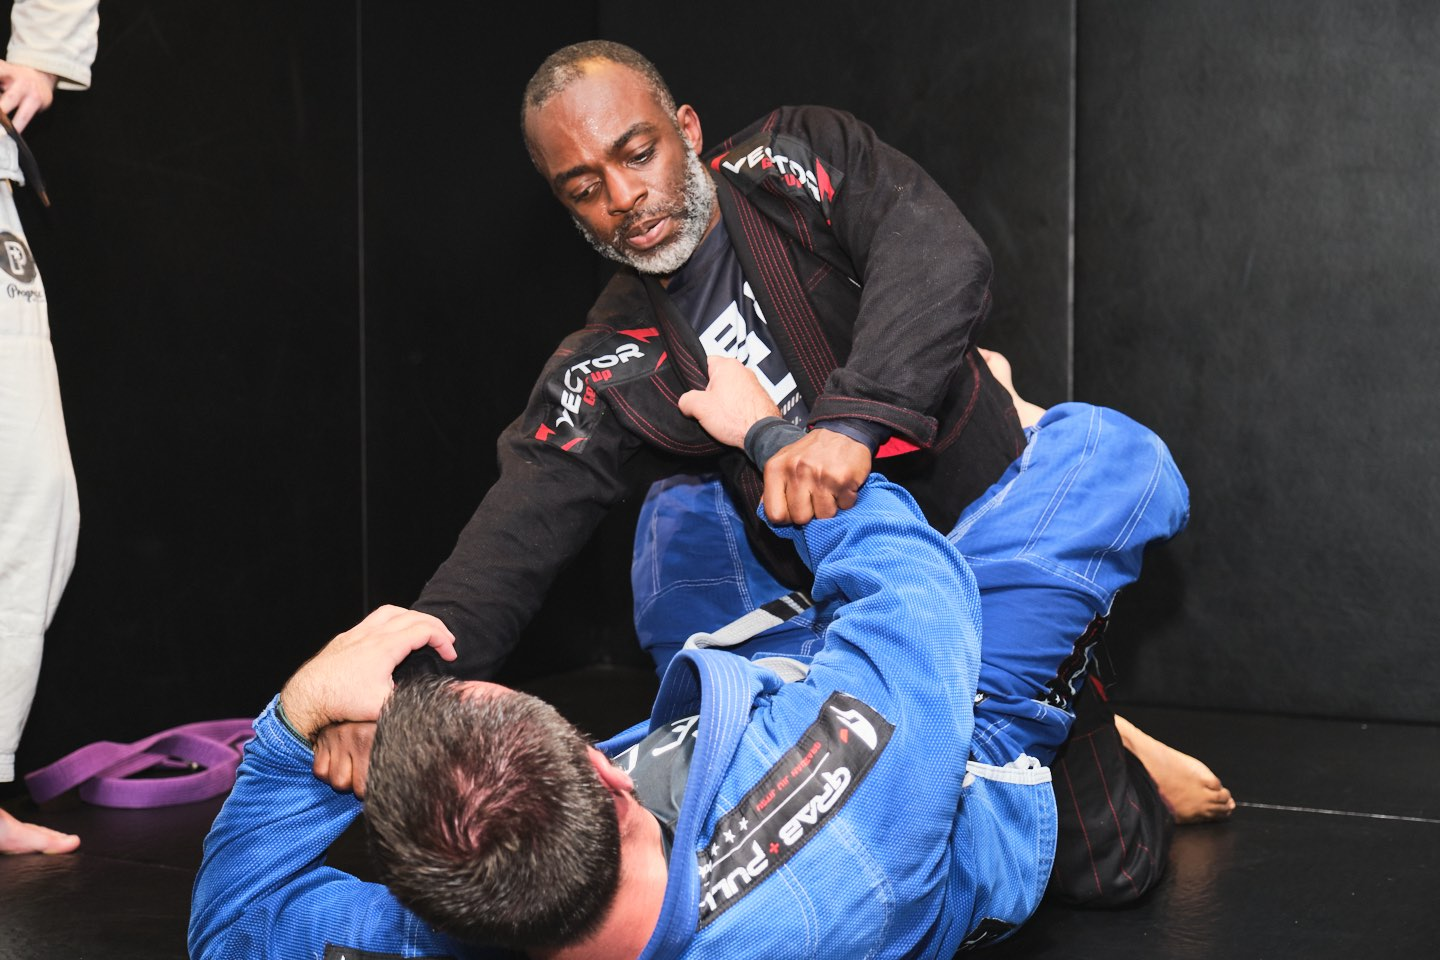 BJJ Student Technique